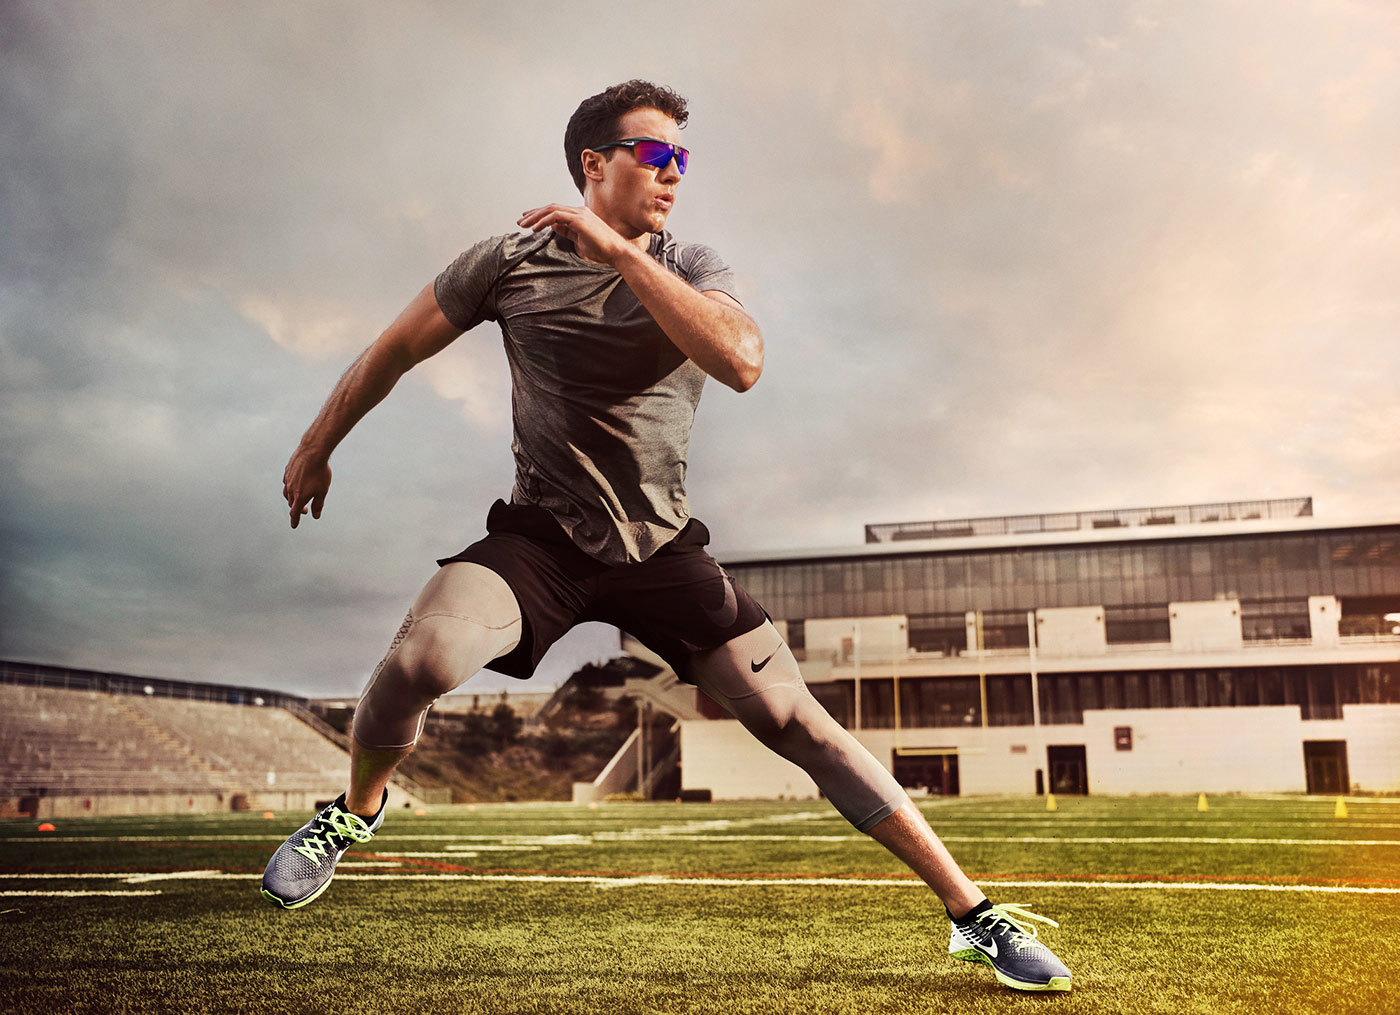 Nike Vision 2017 Training Collection - Photography by Tim Tadder 2